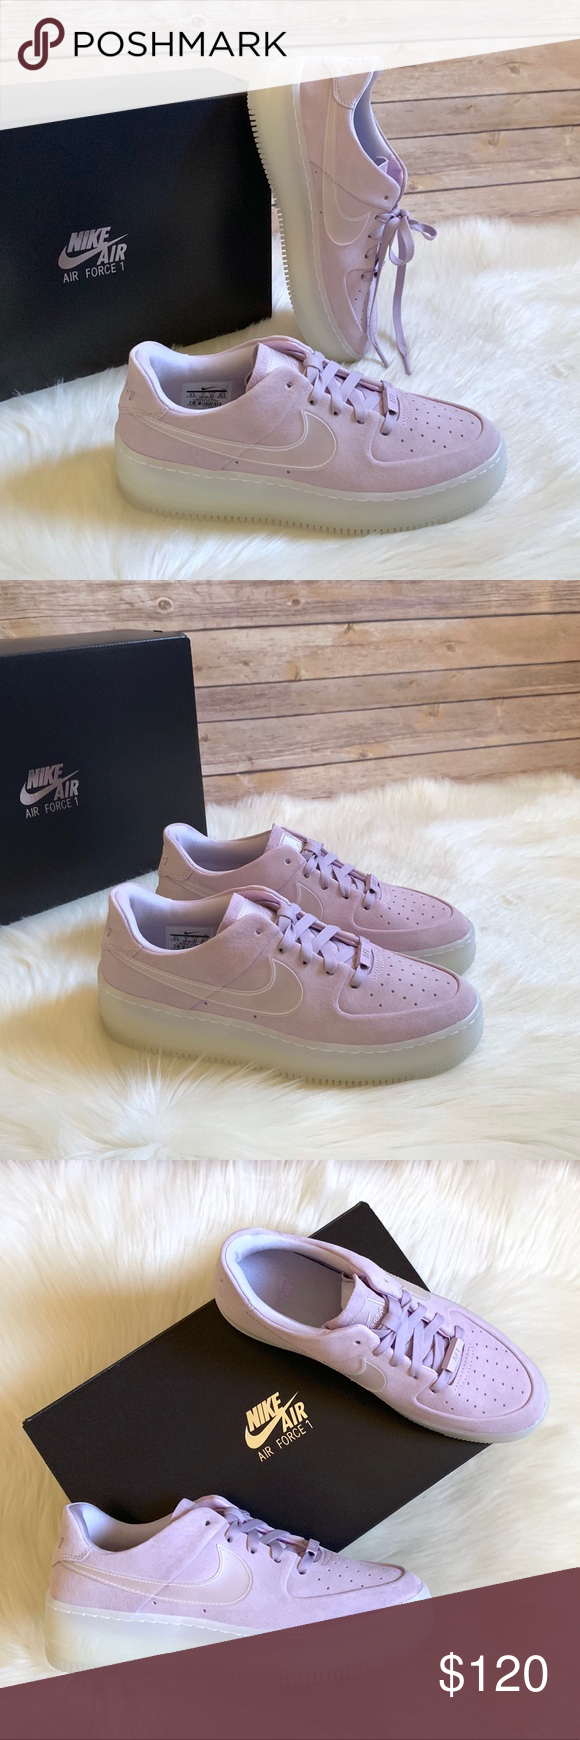 Nike Air Force 1 Sage Low LX In Violet Mist NWT | My Posh